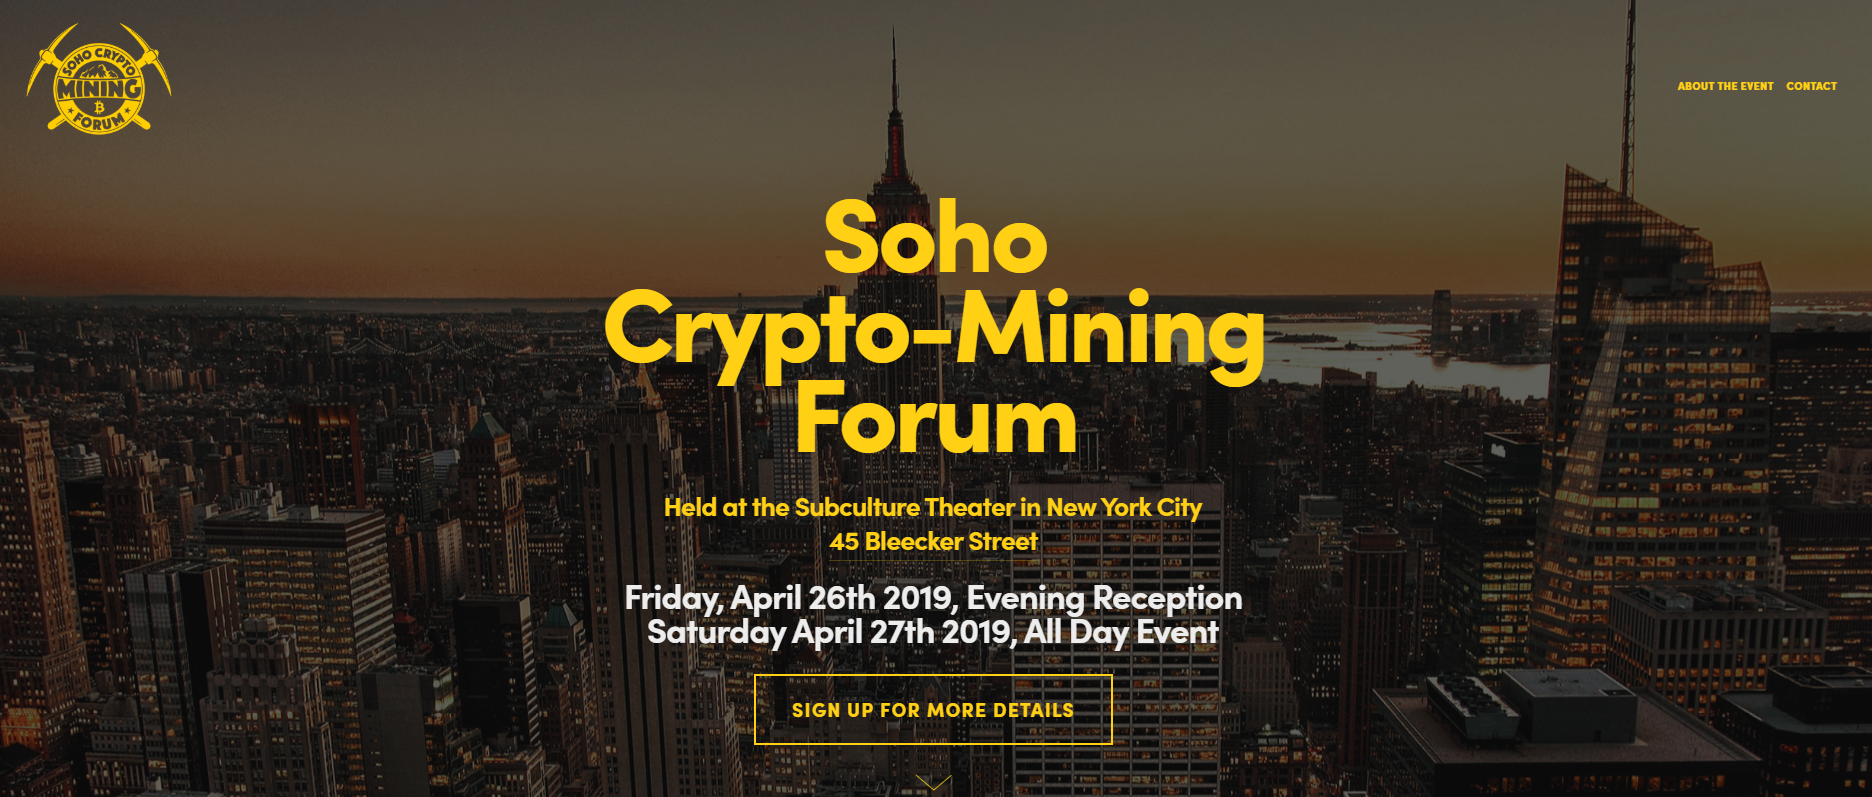 Soho Crypto-Mining Forum